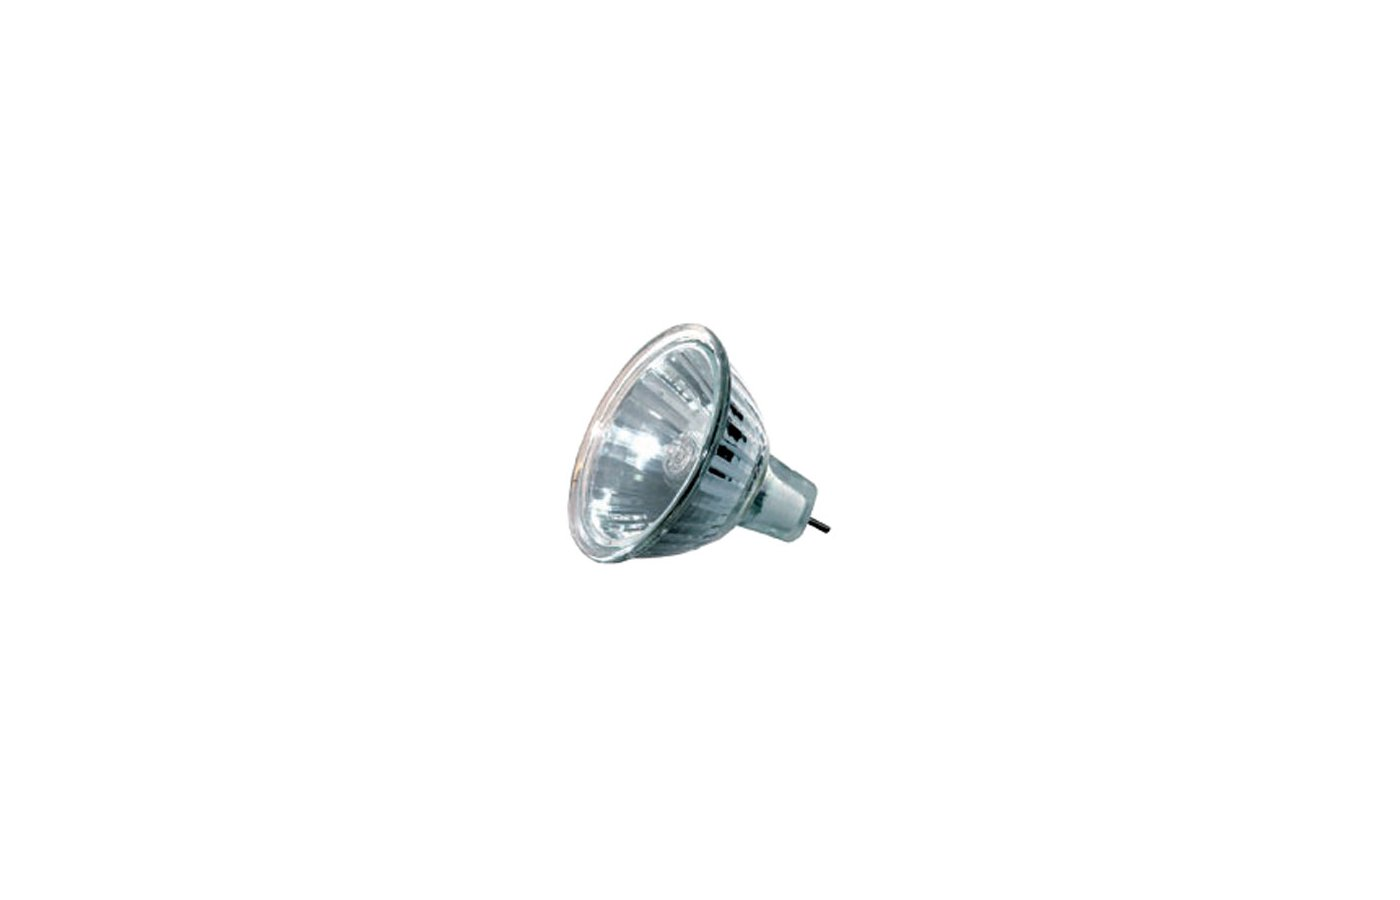 Лампочки галогеновые Camelion JCDR 50W 220V 50mm COOL (Эл.лампа галоген.с защ.стеклом)